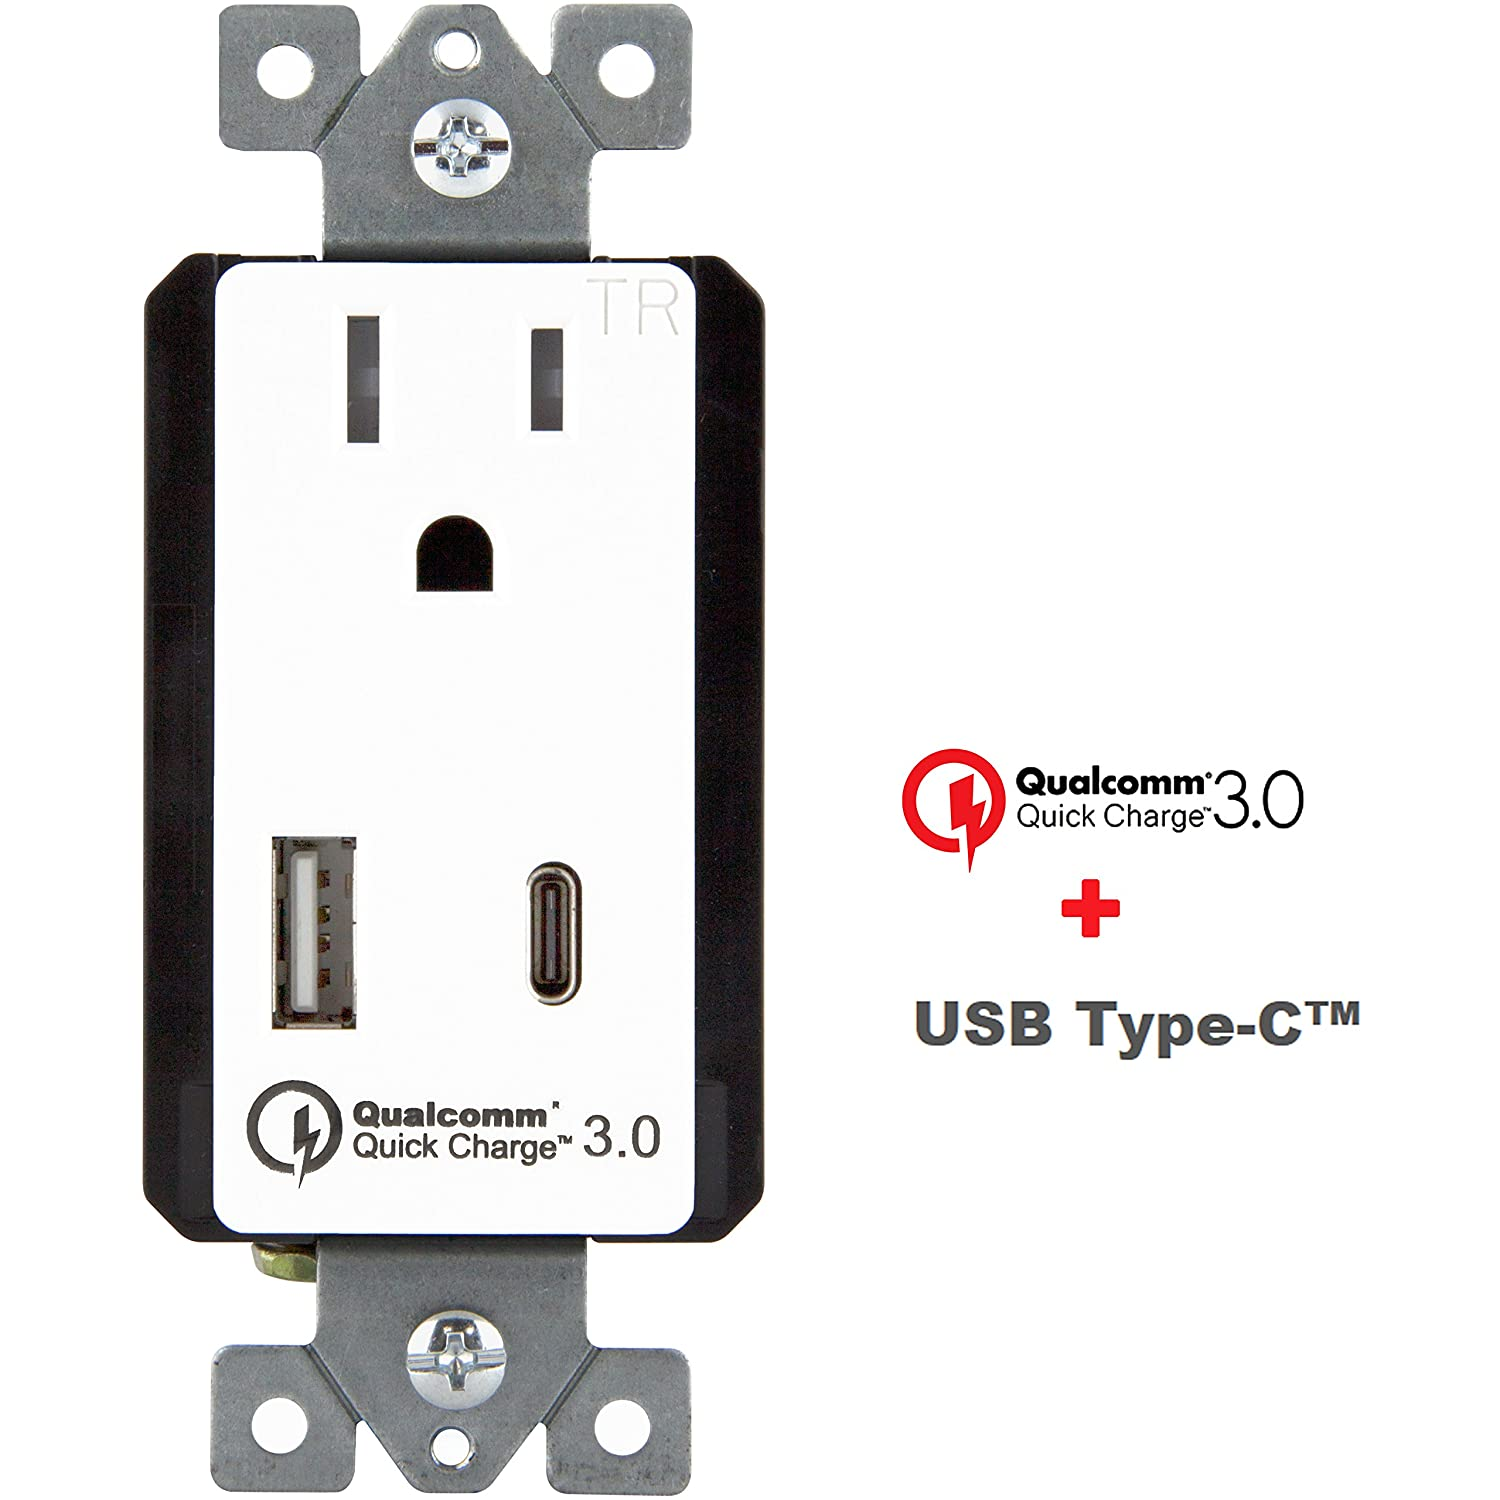 Topgreener Quick Charge 30 Usb In Wall Charger Outlet Type C With Phone Jack Install Home Wiring A Tu1152qcac3 For Samsung Galaxy S7 S6 Edge Plus Lg G3 G5 Nexus 6 Iphone 7